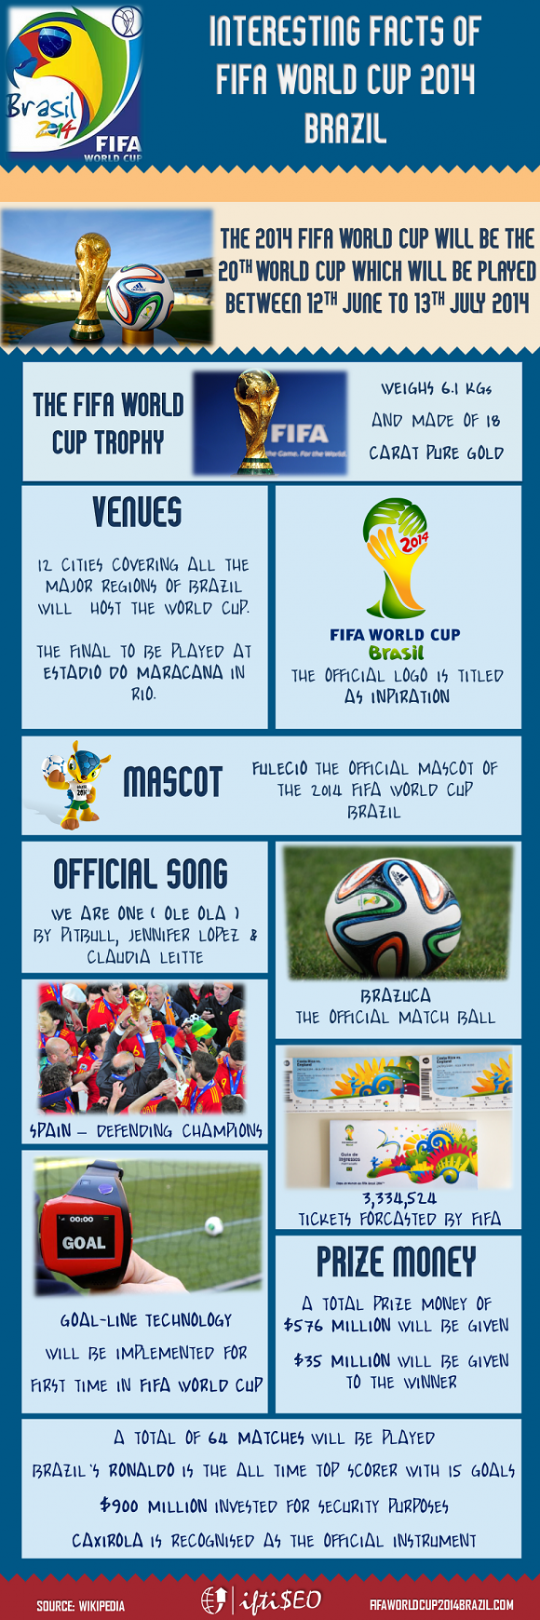 Interesting Facts of FIFA World Cup 2014 Brazil